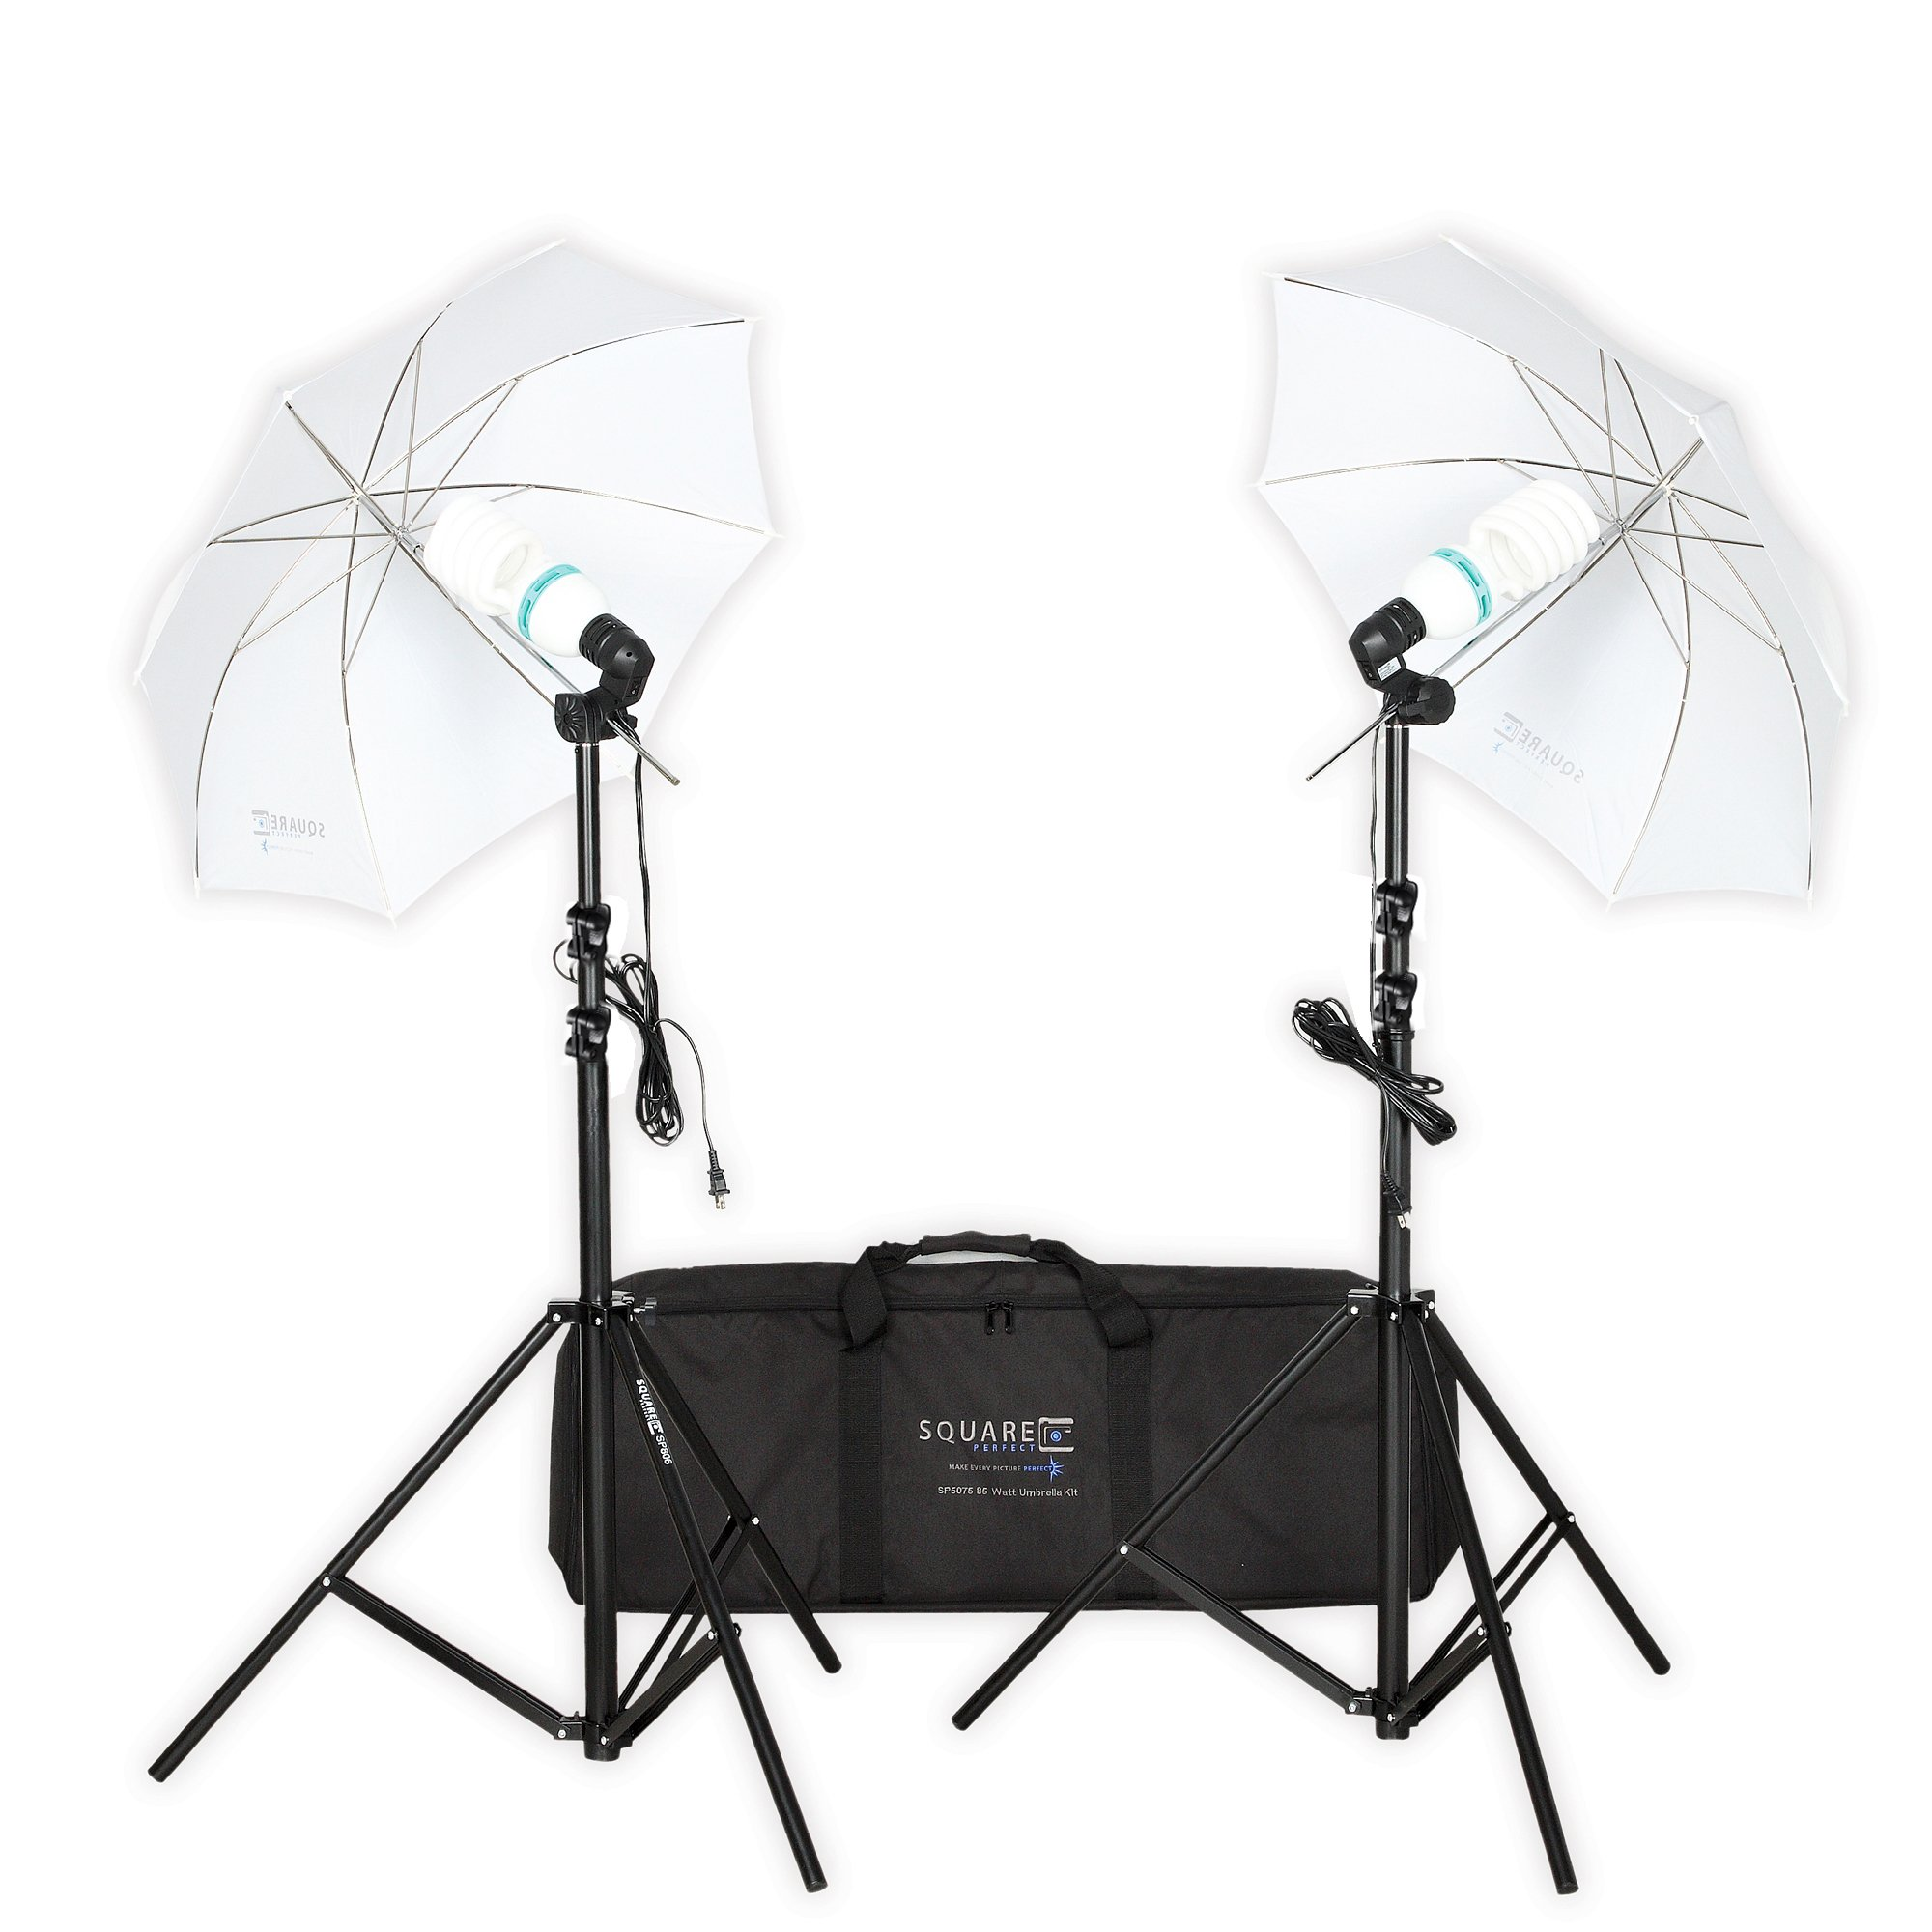 Square Perfect SP5075 85 Watt Professional Photo Umbrella by Square Perfect